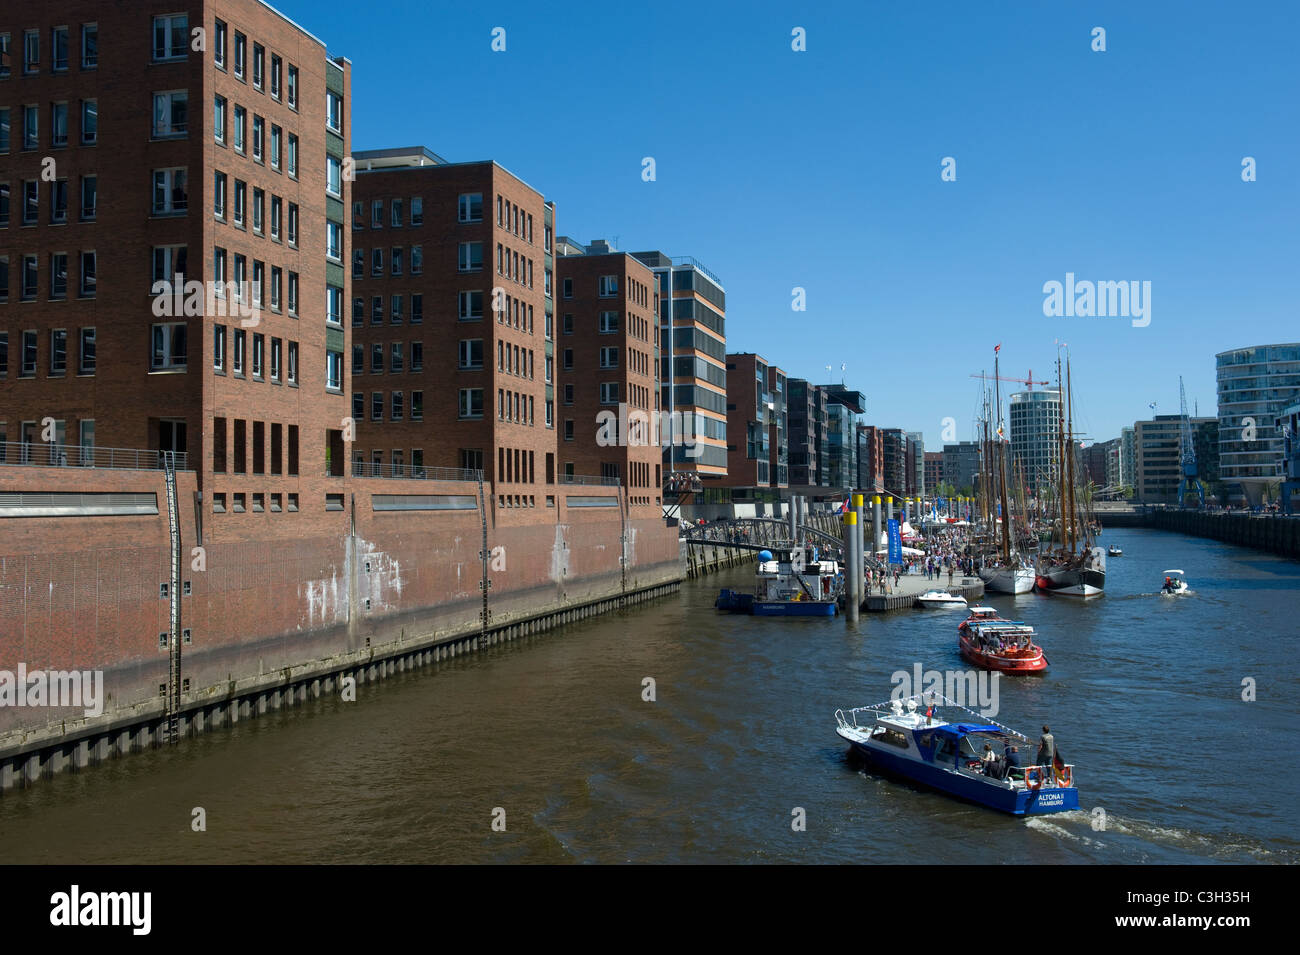 Sandtorkai office blocks and the traditional ship harbour at HafenCity Hamburg in Germany - Stock Image